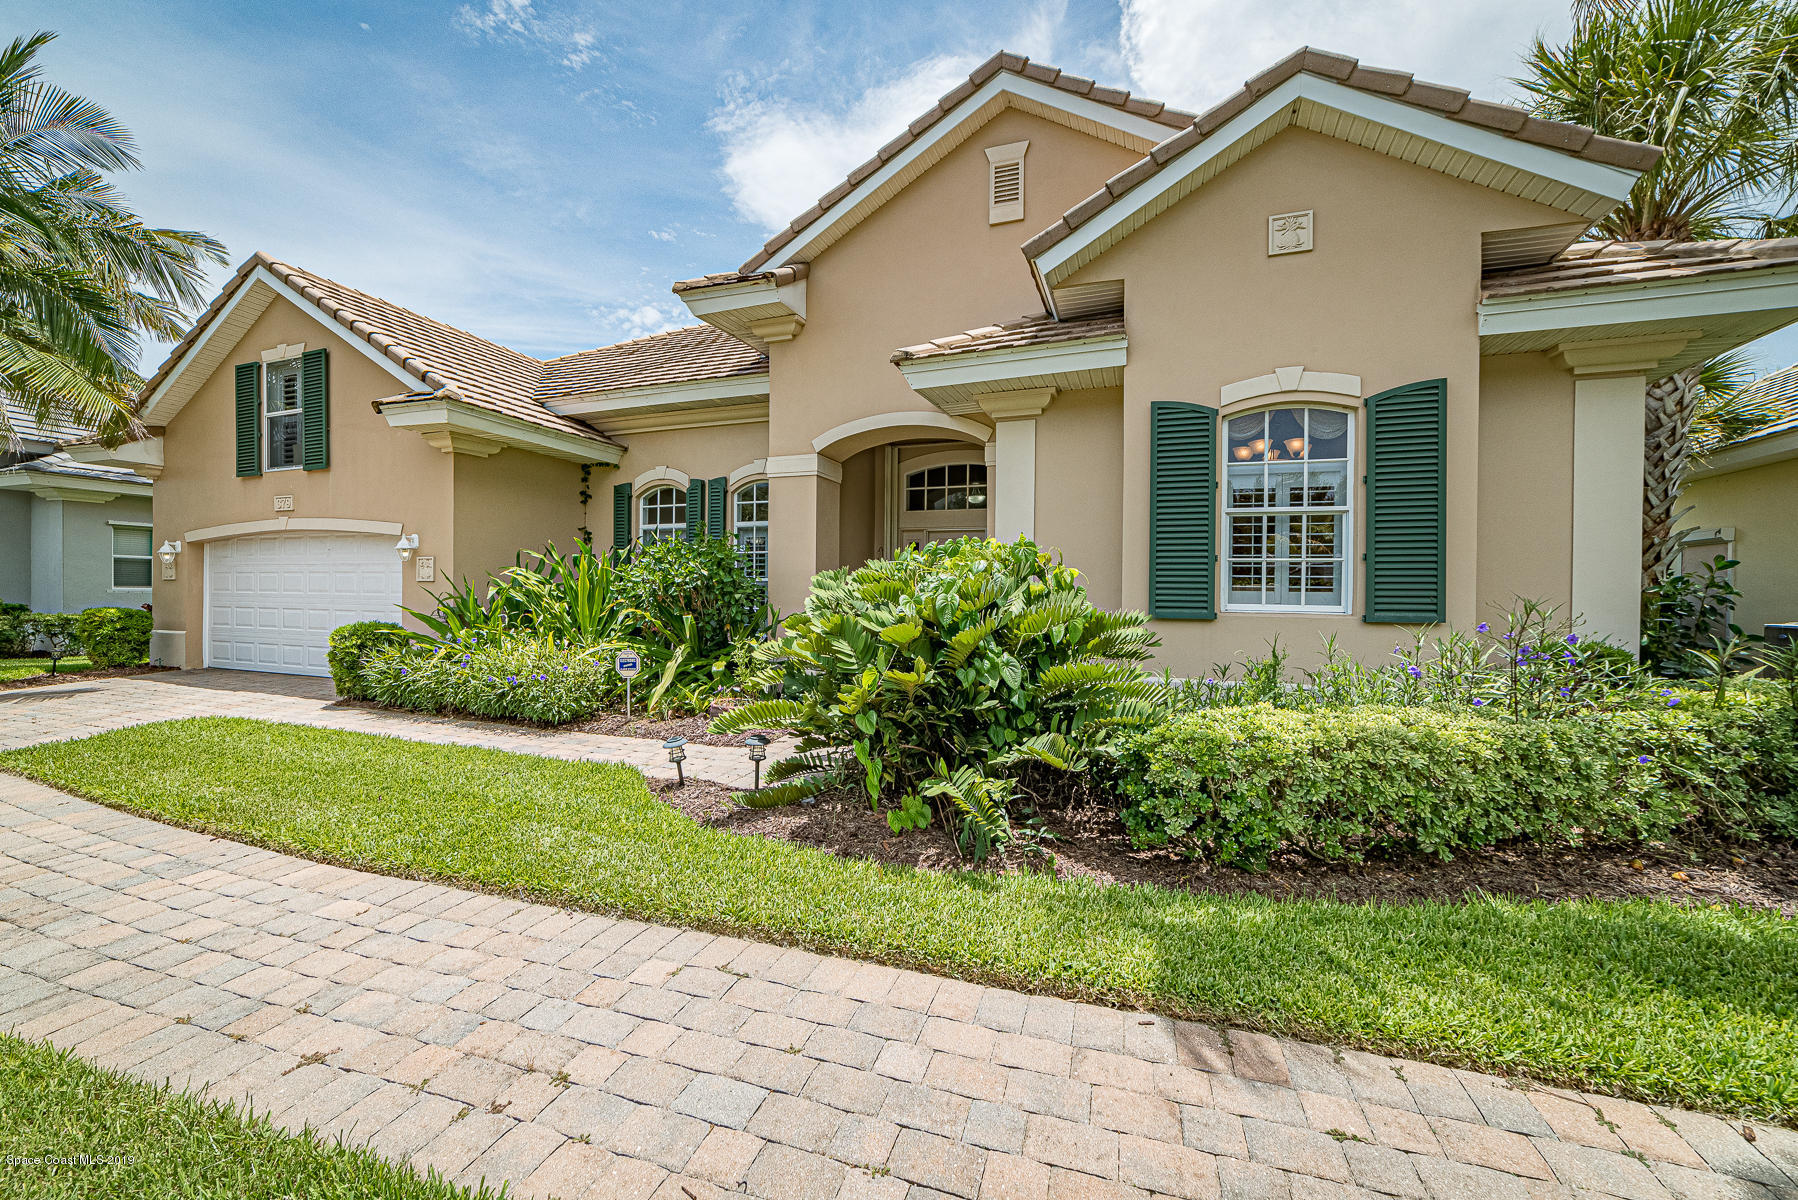 Single Family Homes for Sale at 379 Pentland Melbourne Beach, Florida 32951 United States